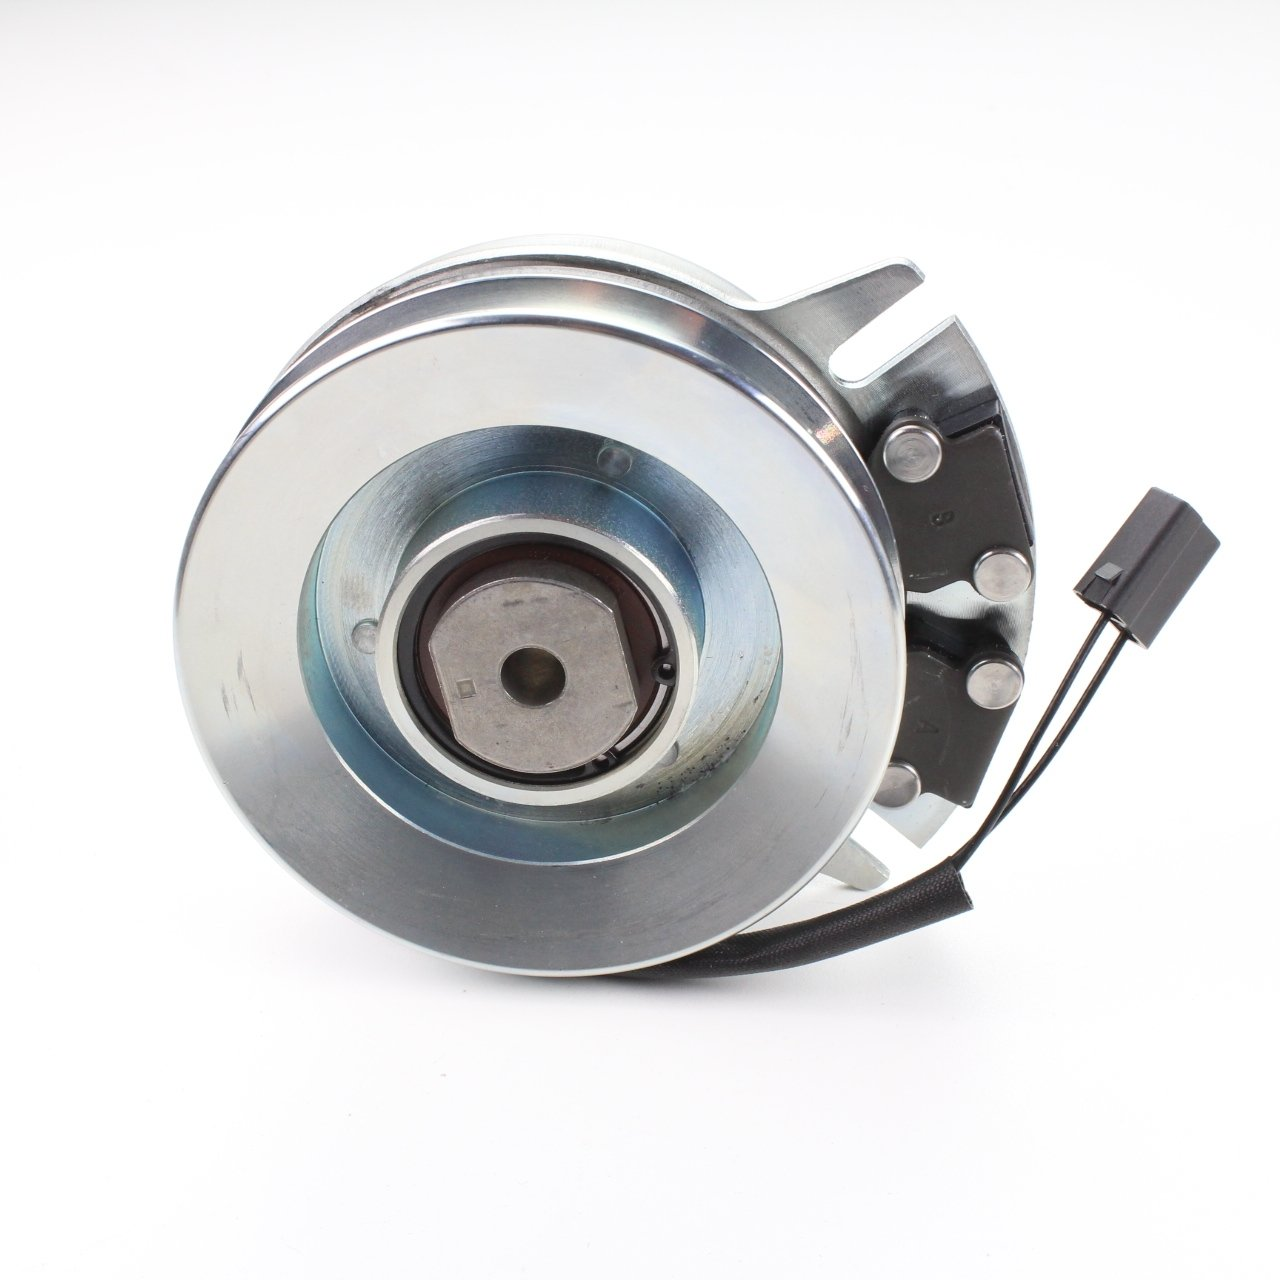 Niche Pto Clutch For Snapper Lt160h42dbv2 Lt160h42gbv Lt160h42gbv2 Lt160h42cbv2 Wiring Harness Industries